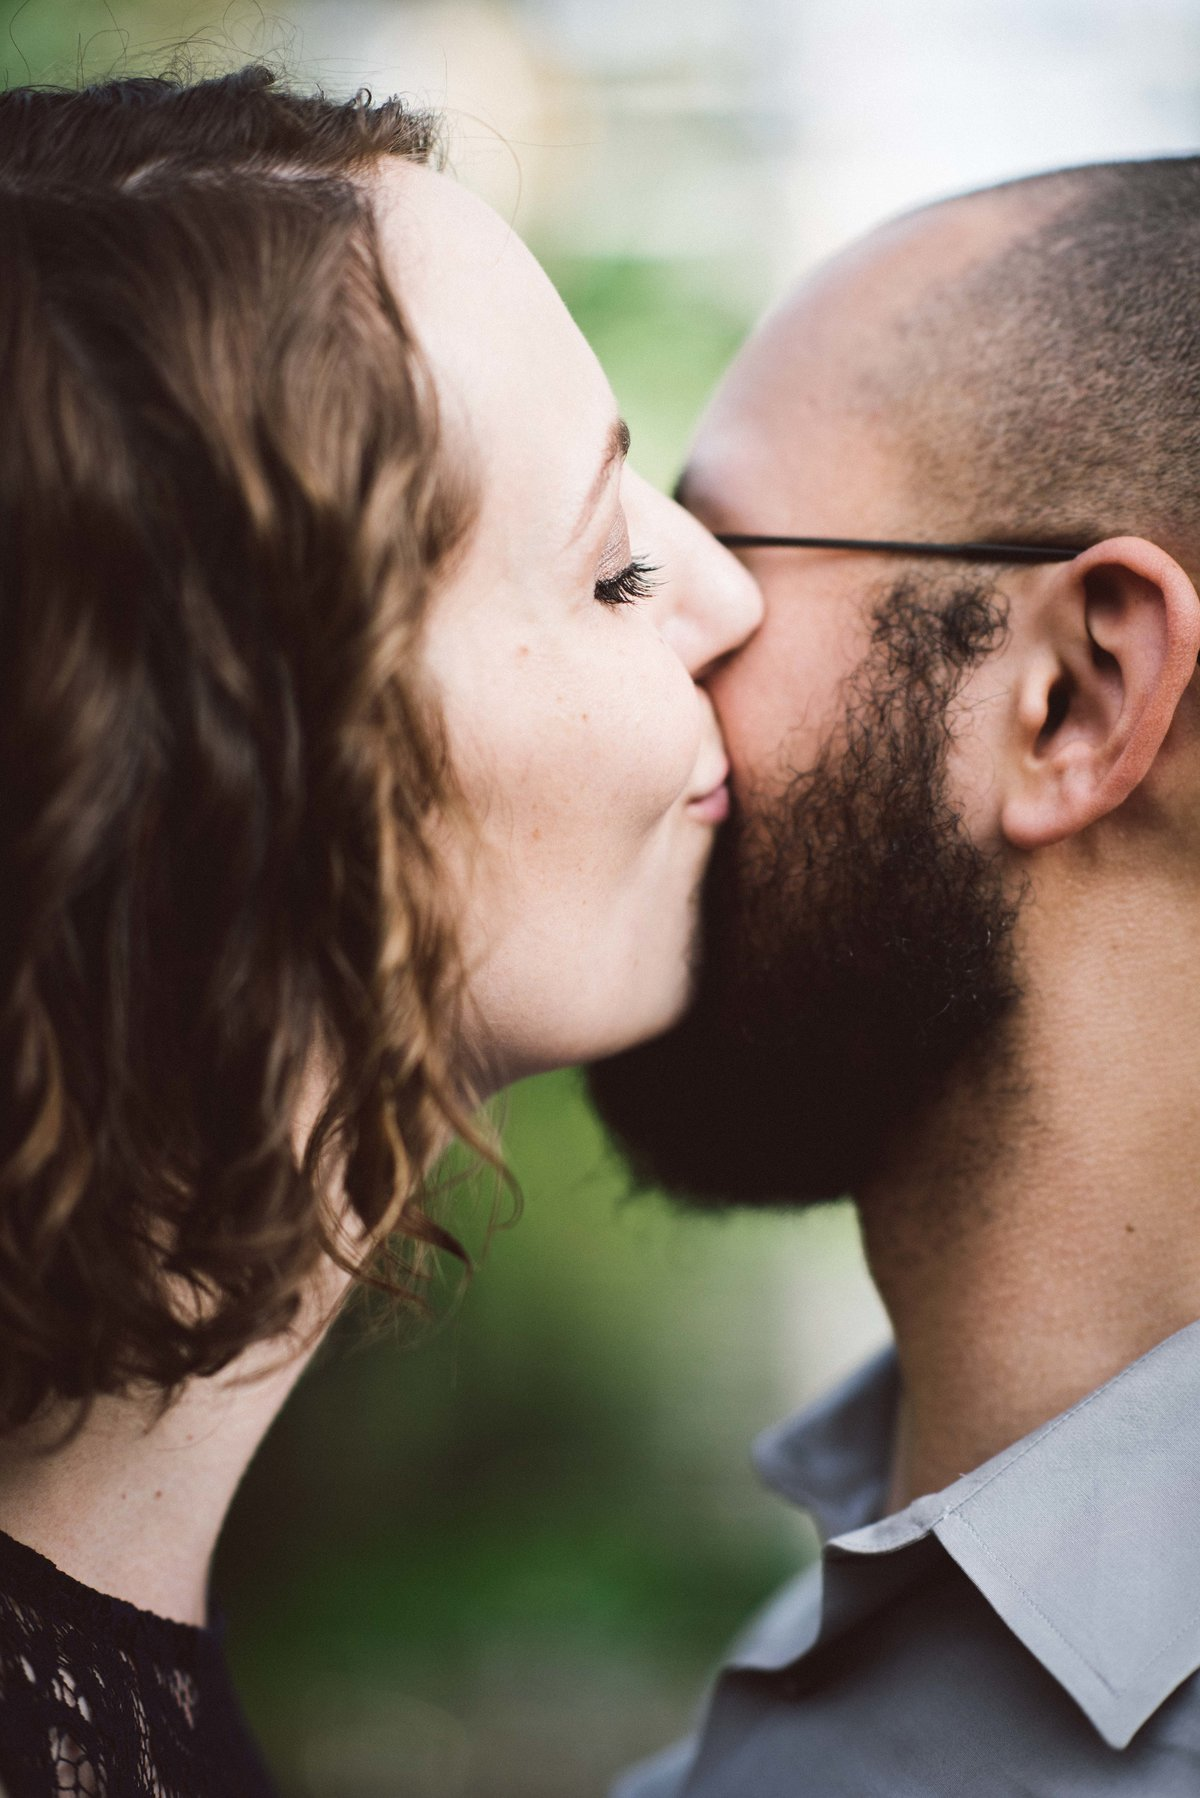 Woman kisses fiance during engagement session, Chicago.